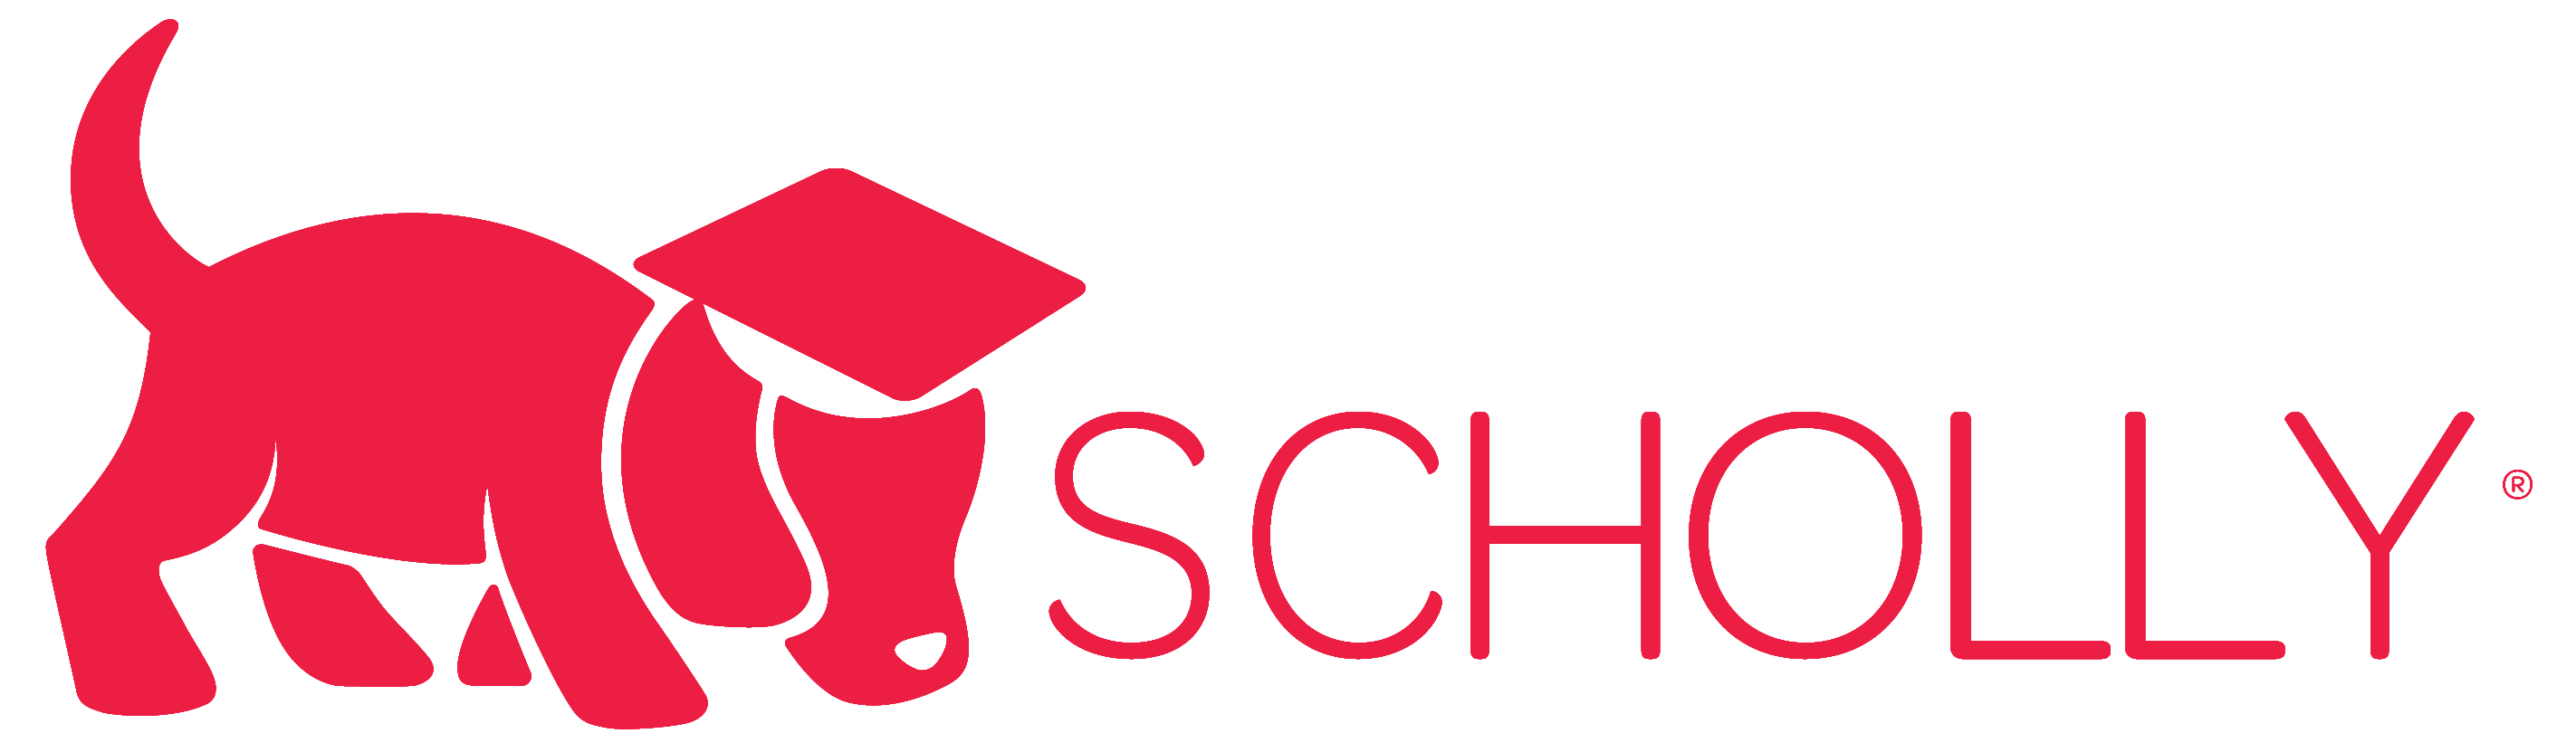 Scholly: Apply Today to Receive $1,000 in Cash Assistance